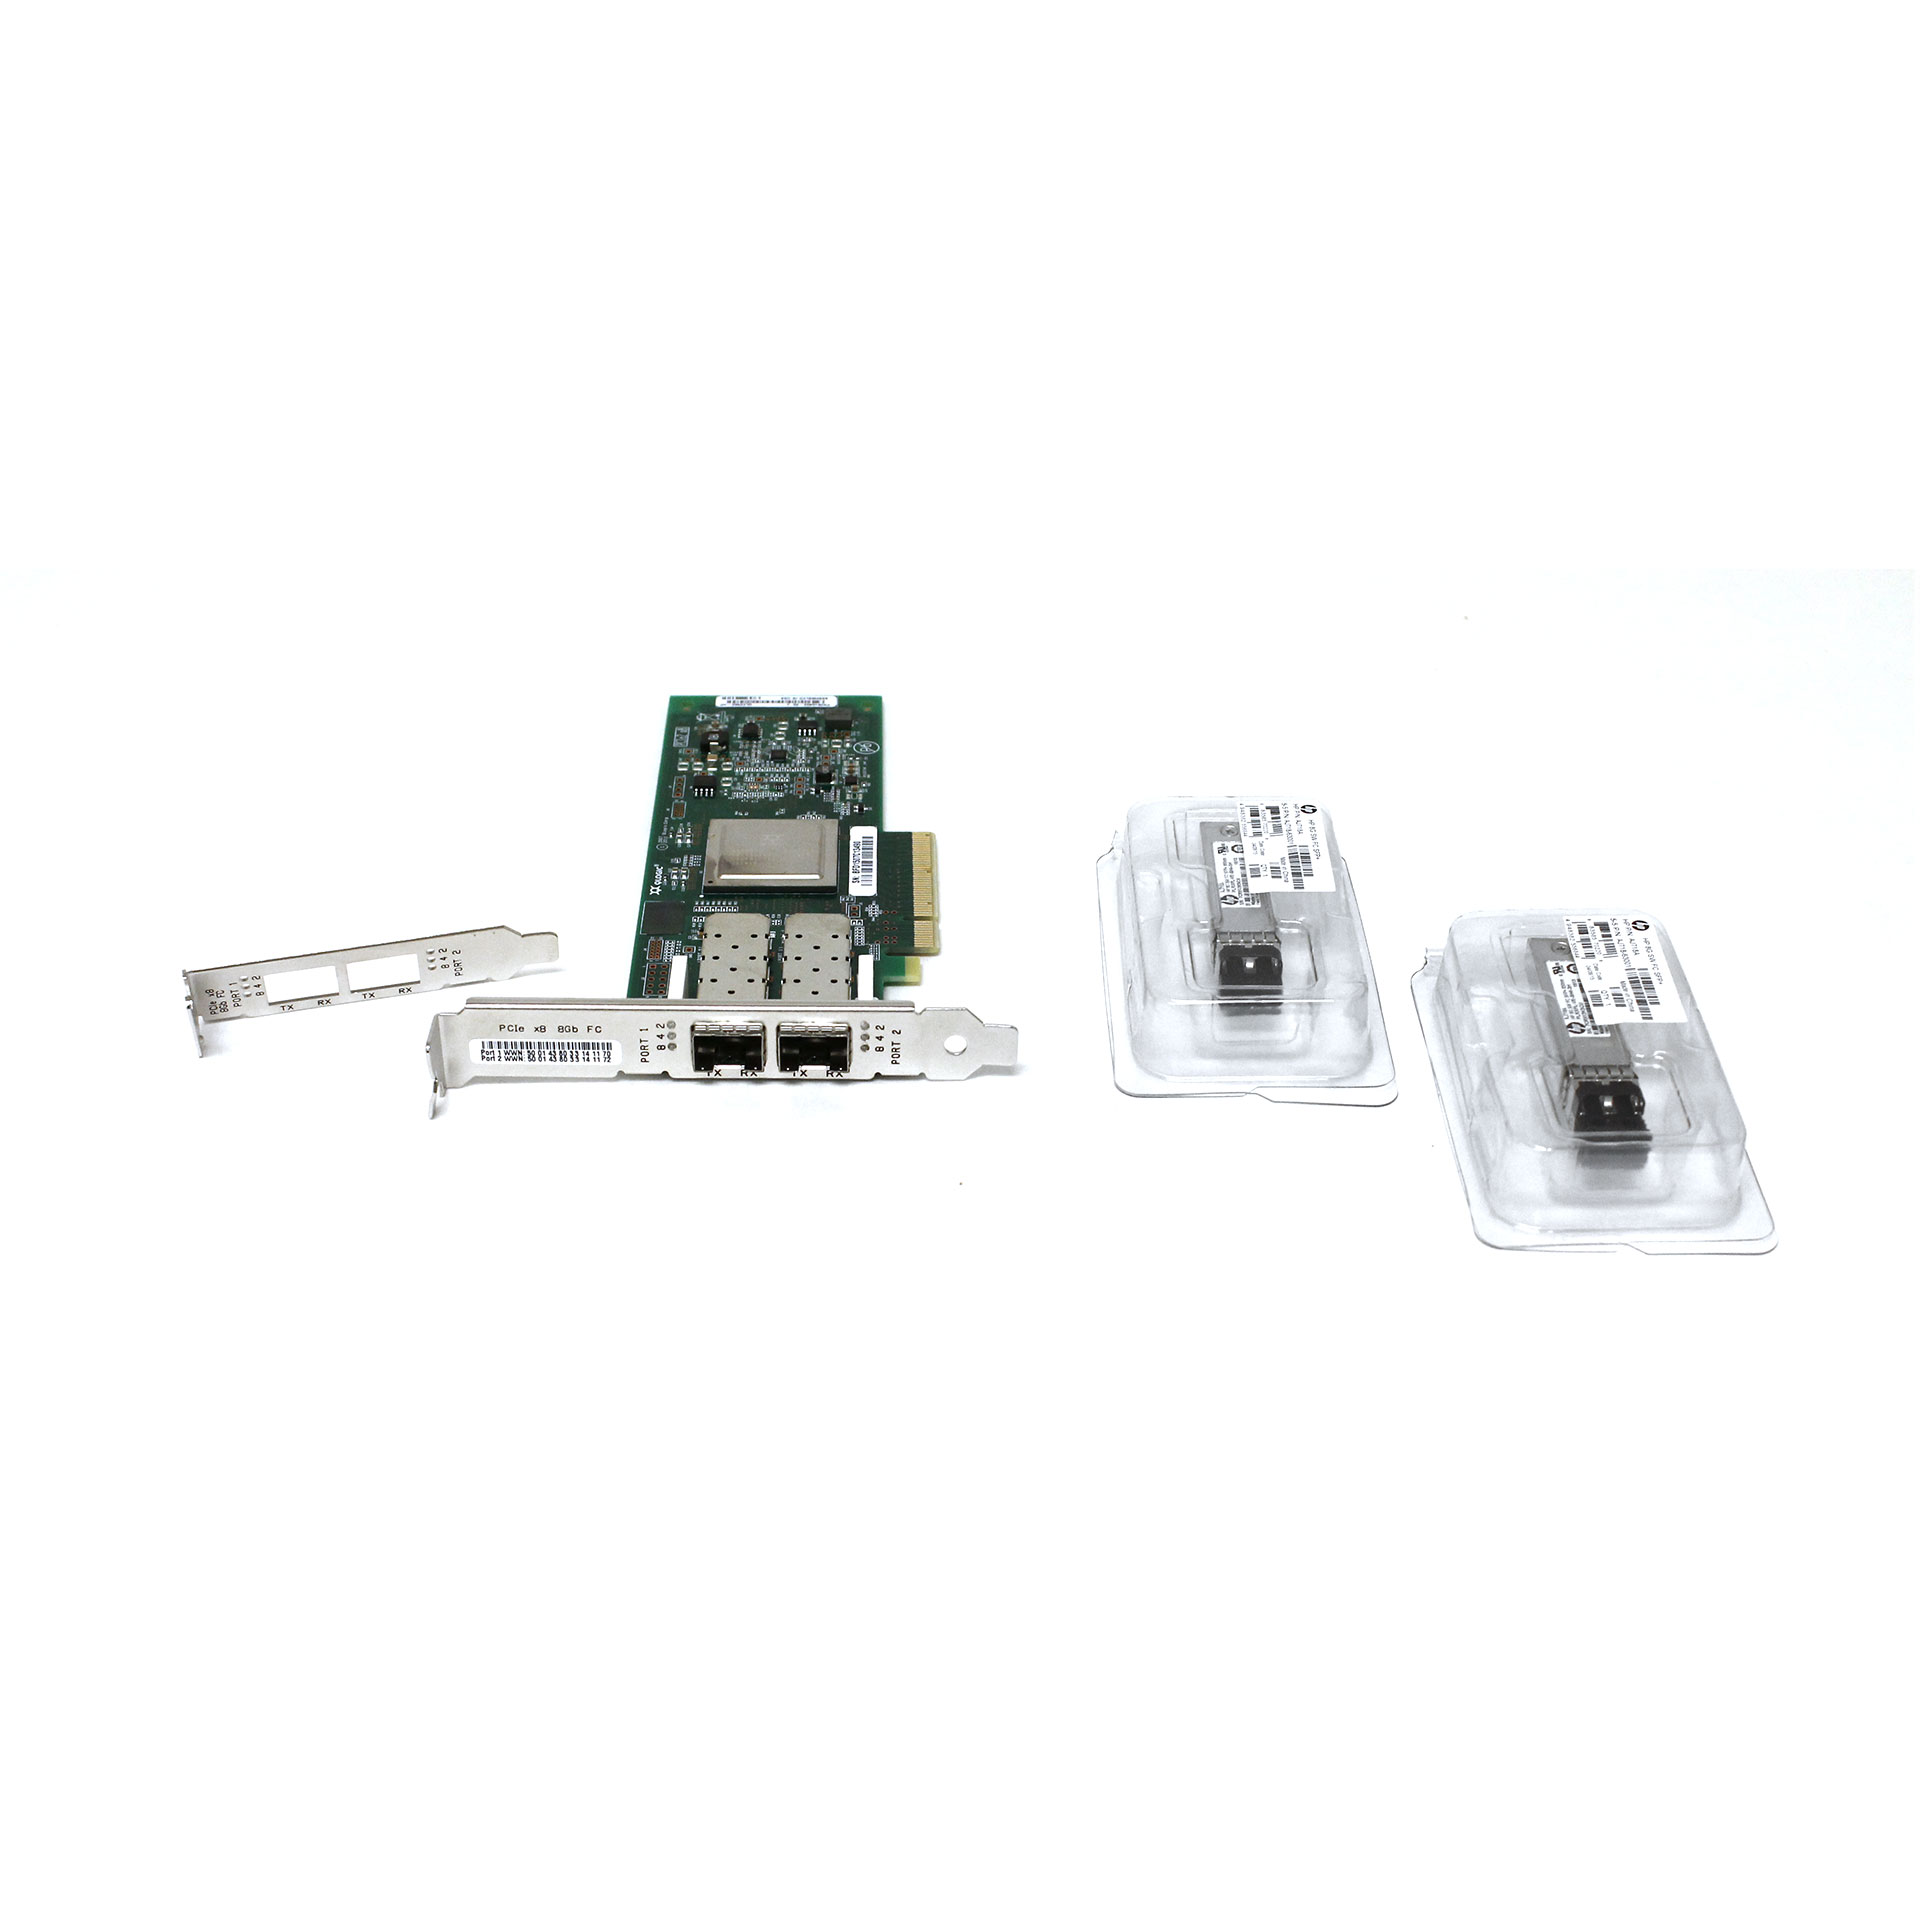 Qlogic QLE2562 Dual Port 8GB Fibre Channel PCIe Host Bus Adapter